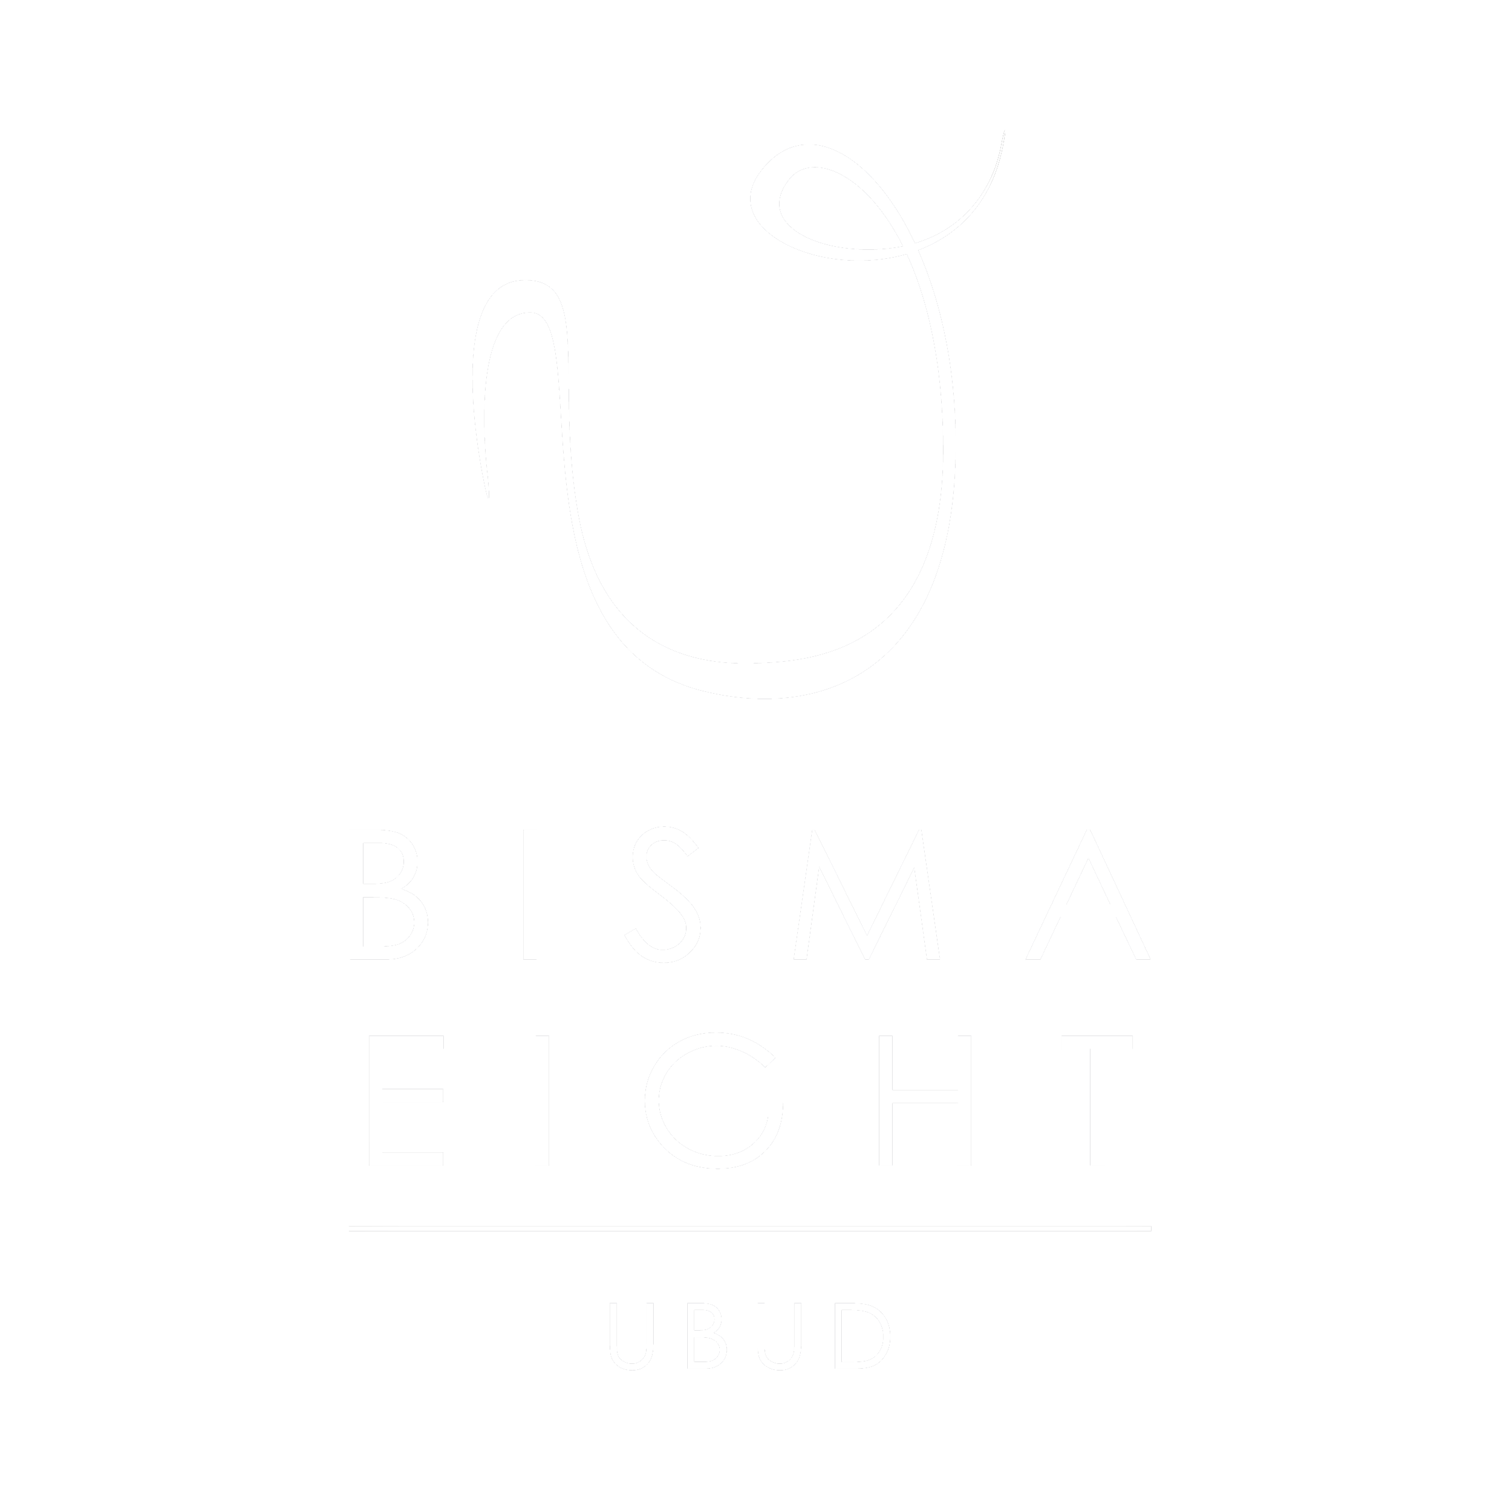 Bisma Eight Ubud | A Luxury Boutique Hotel In Ubud, Bali |